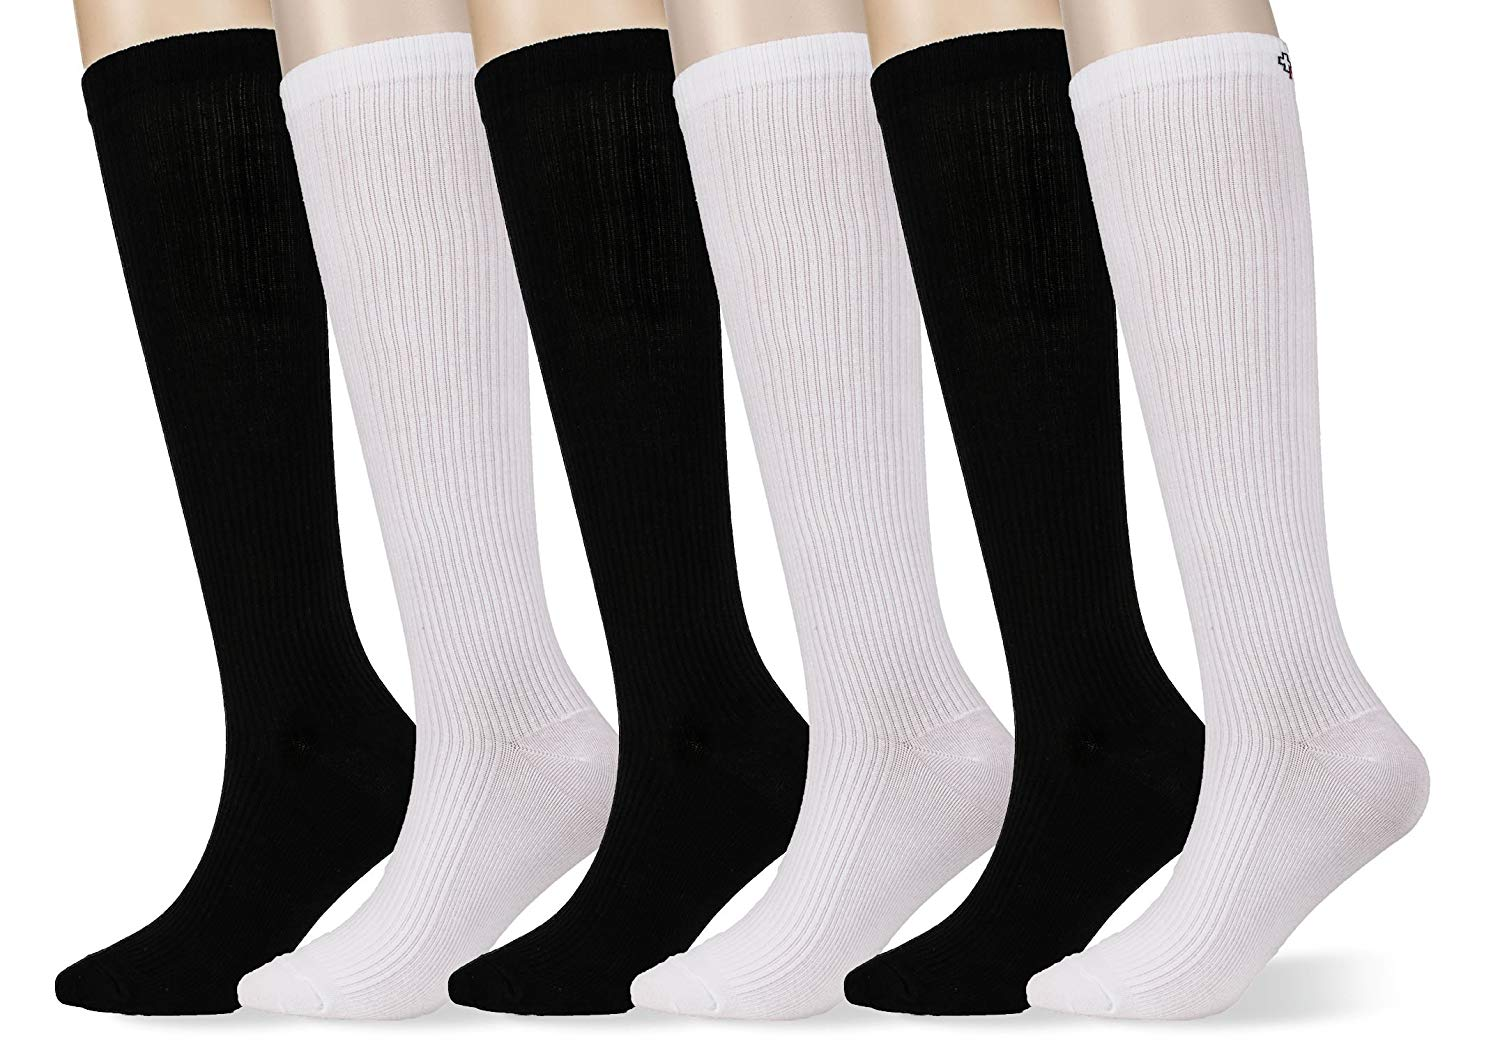 245c9354be Get Quotations · MD 6 Pairs Premium Cotton Summer Compression Socks for  Women & Men -Anti-DVT